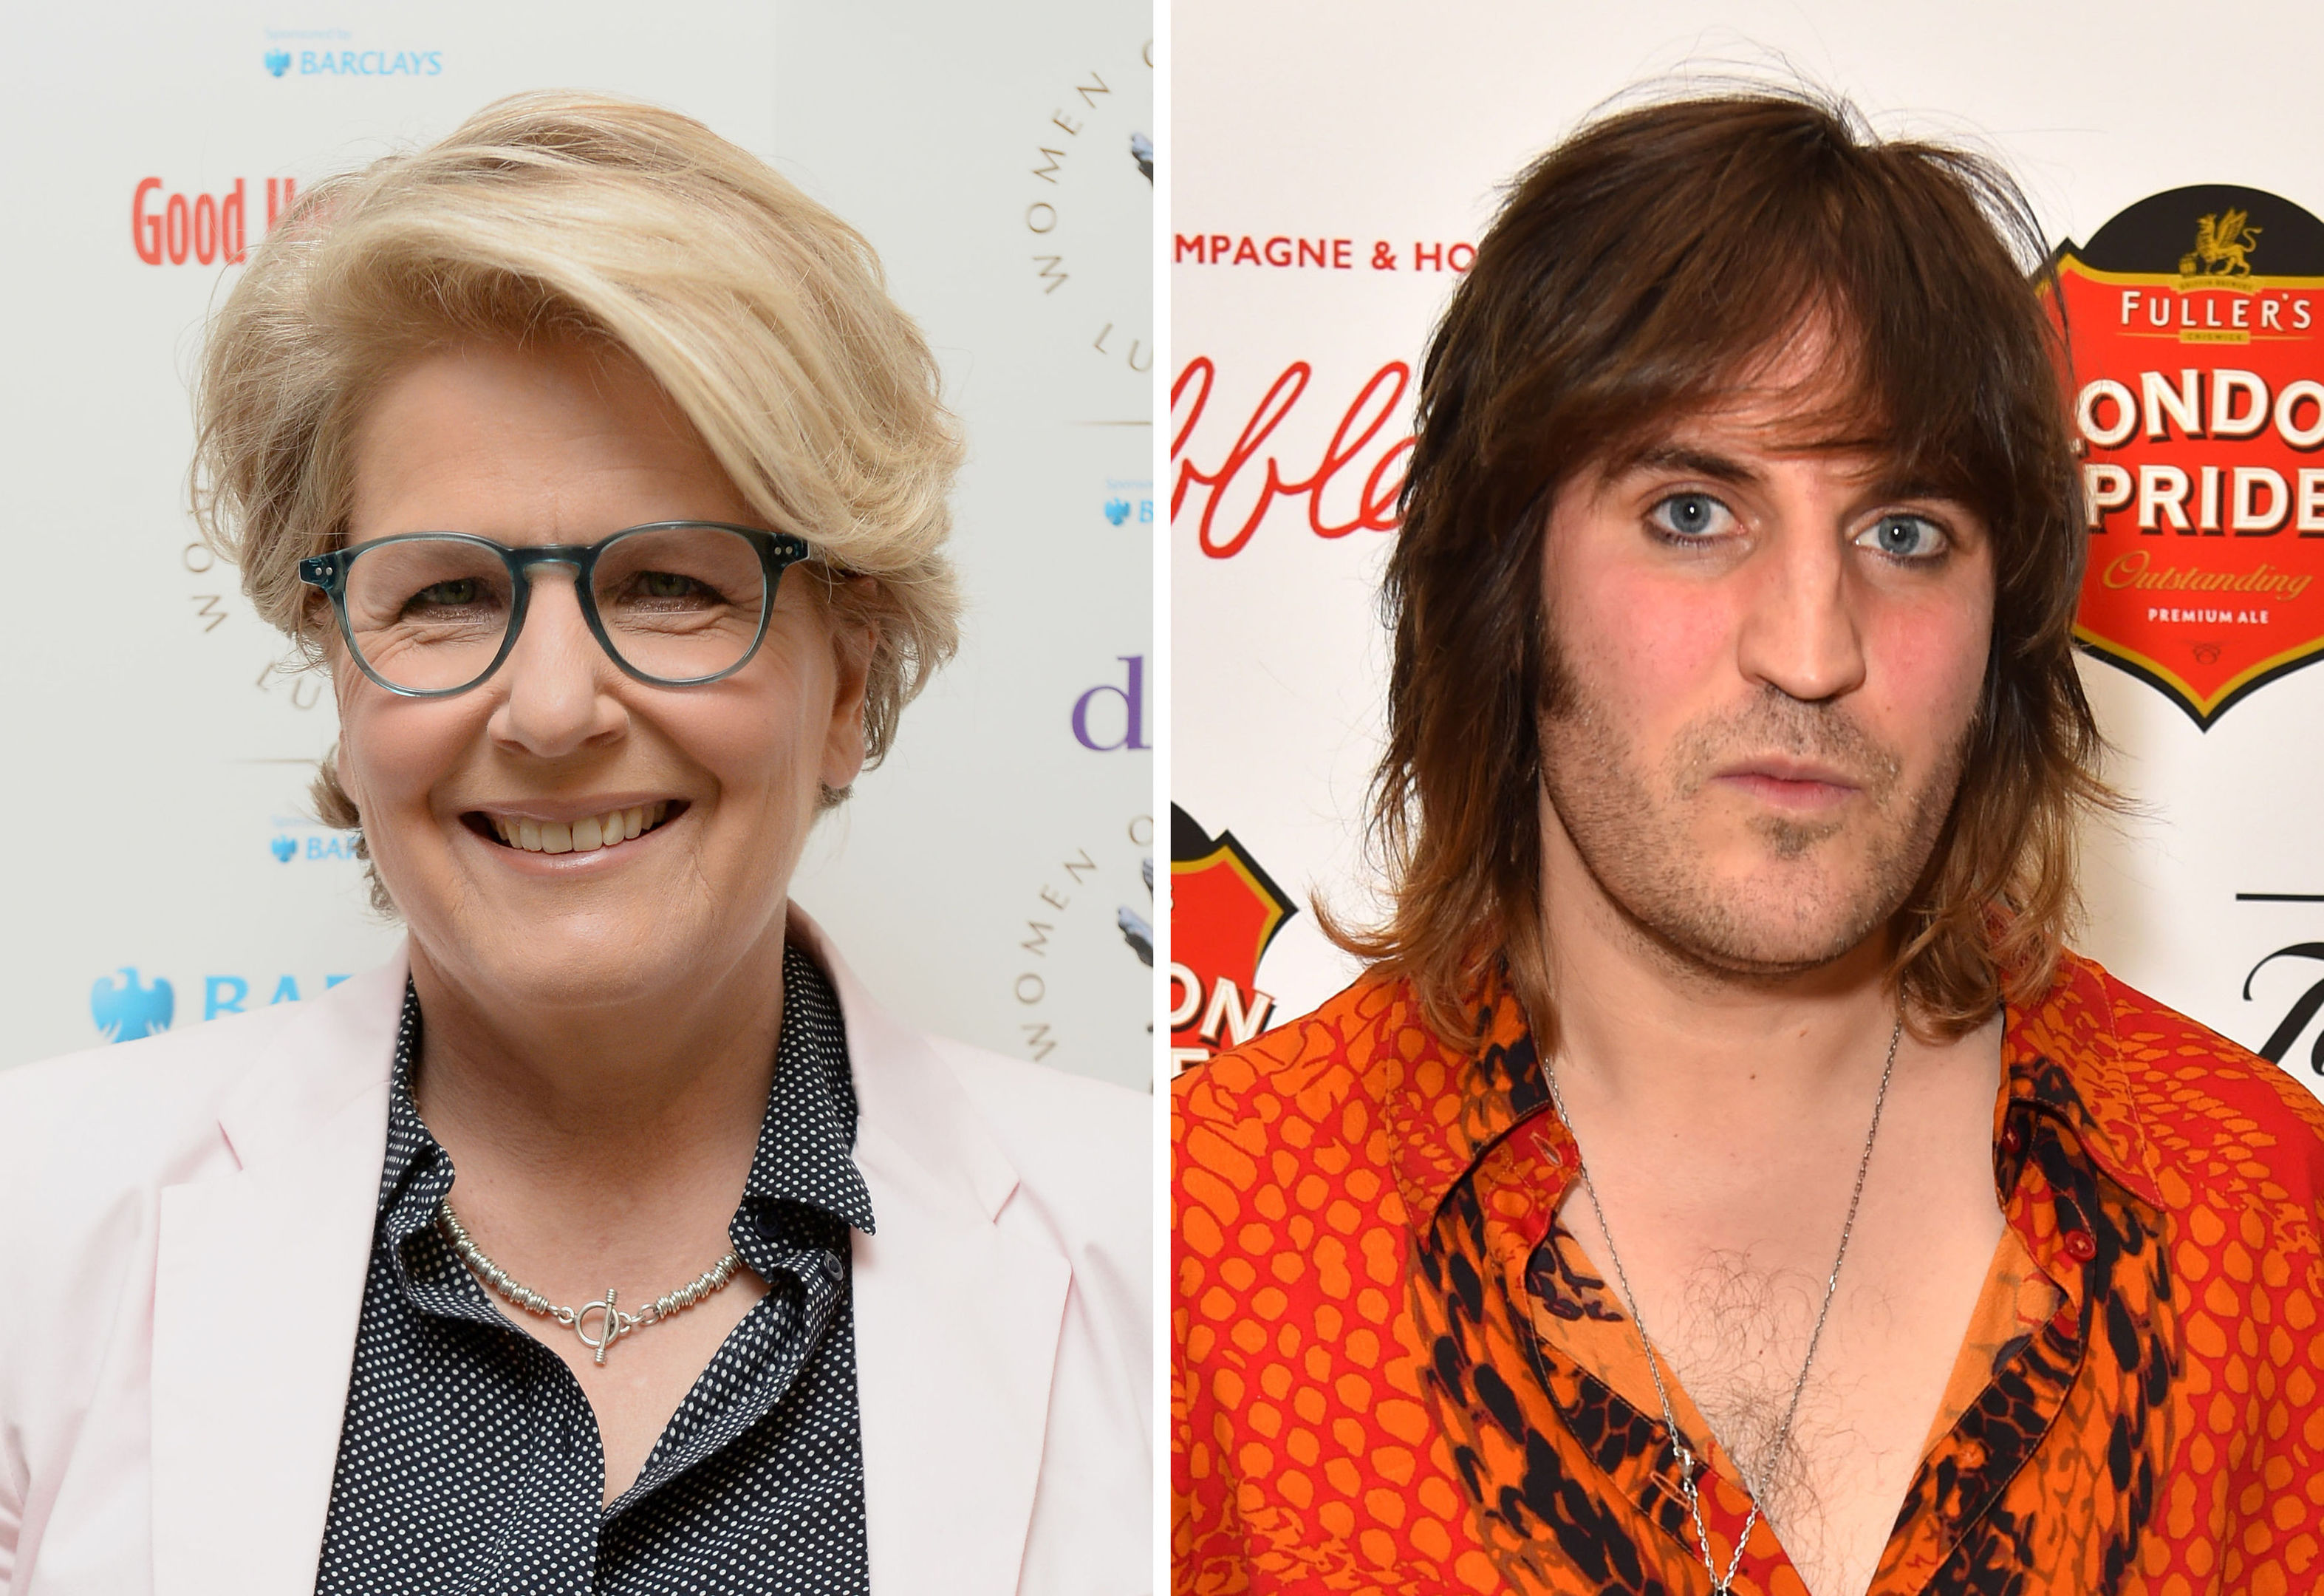 Presenters Sandi Toksvig and Noel Fielding will host the new-look Bake Off show, which has moved from the BBC after it was sold by Love Productions last year. (PA Wire)